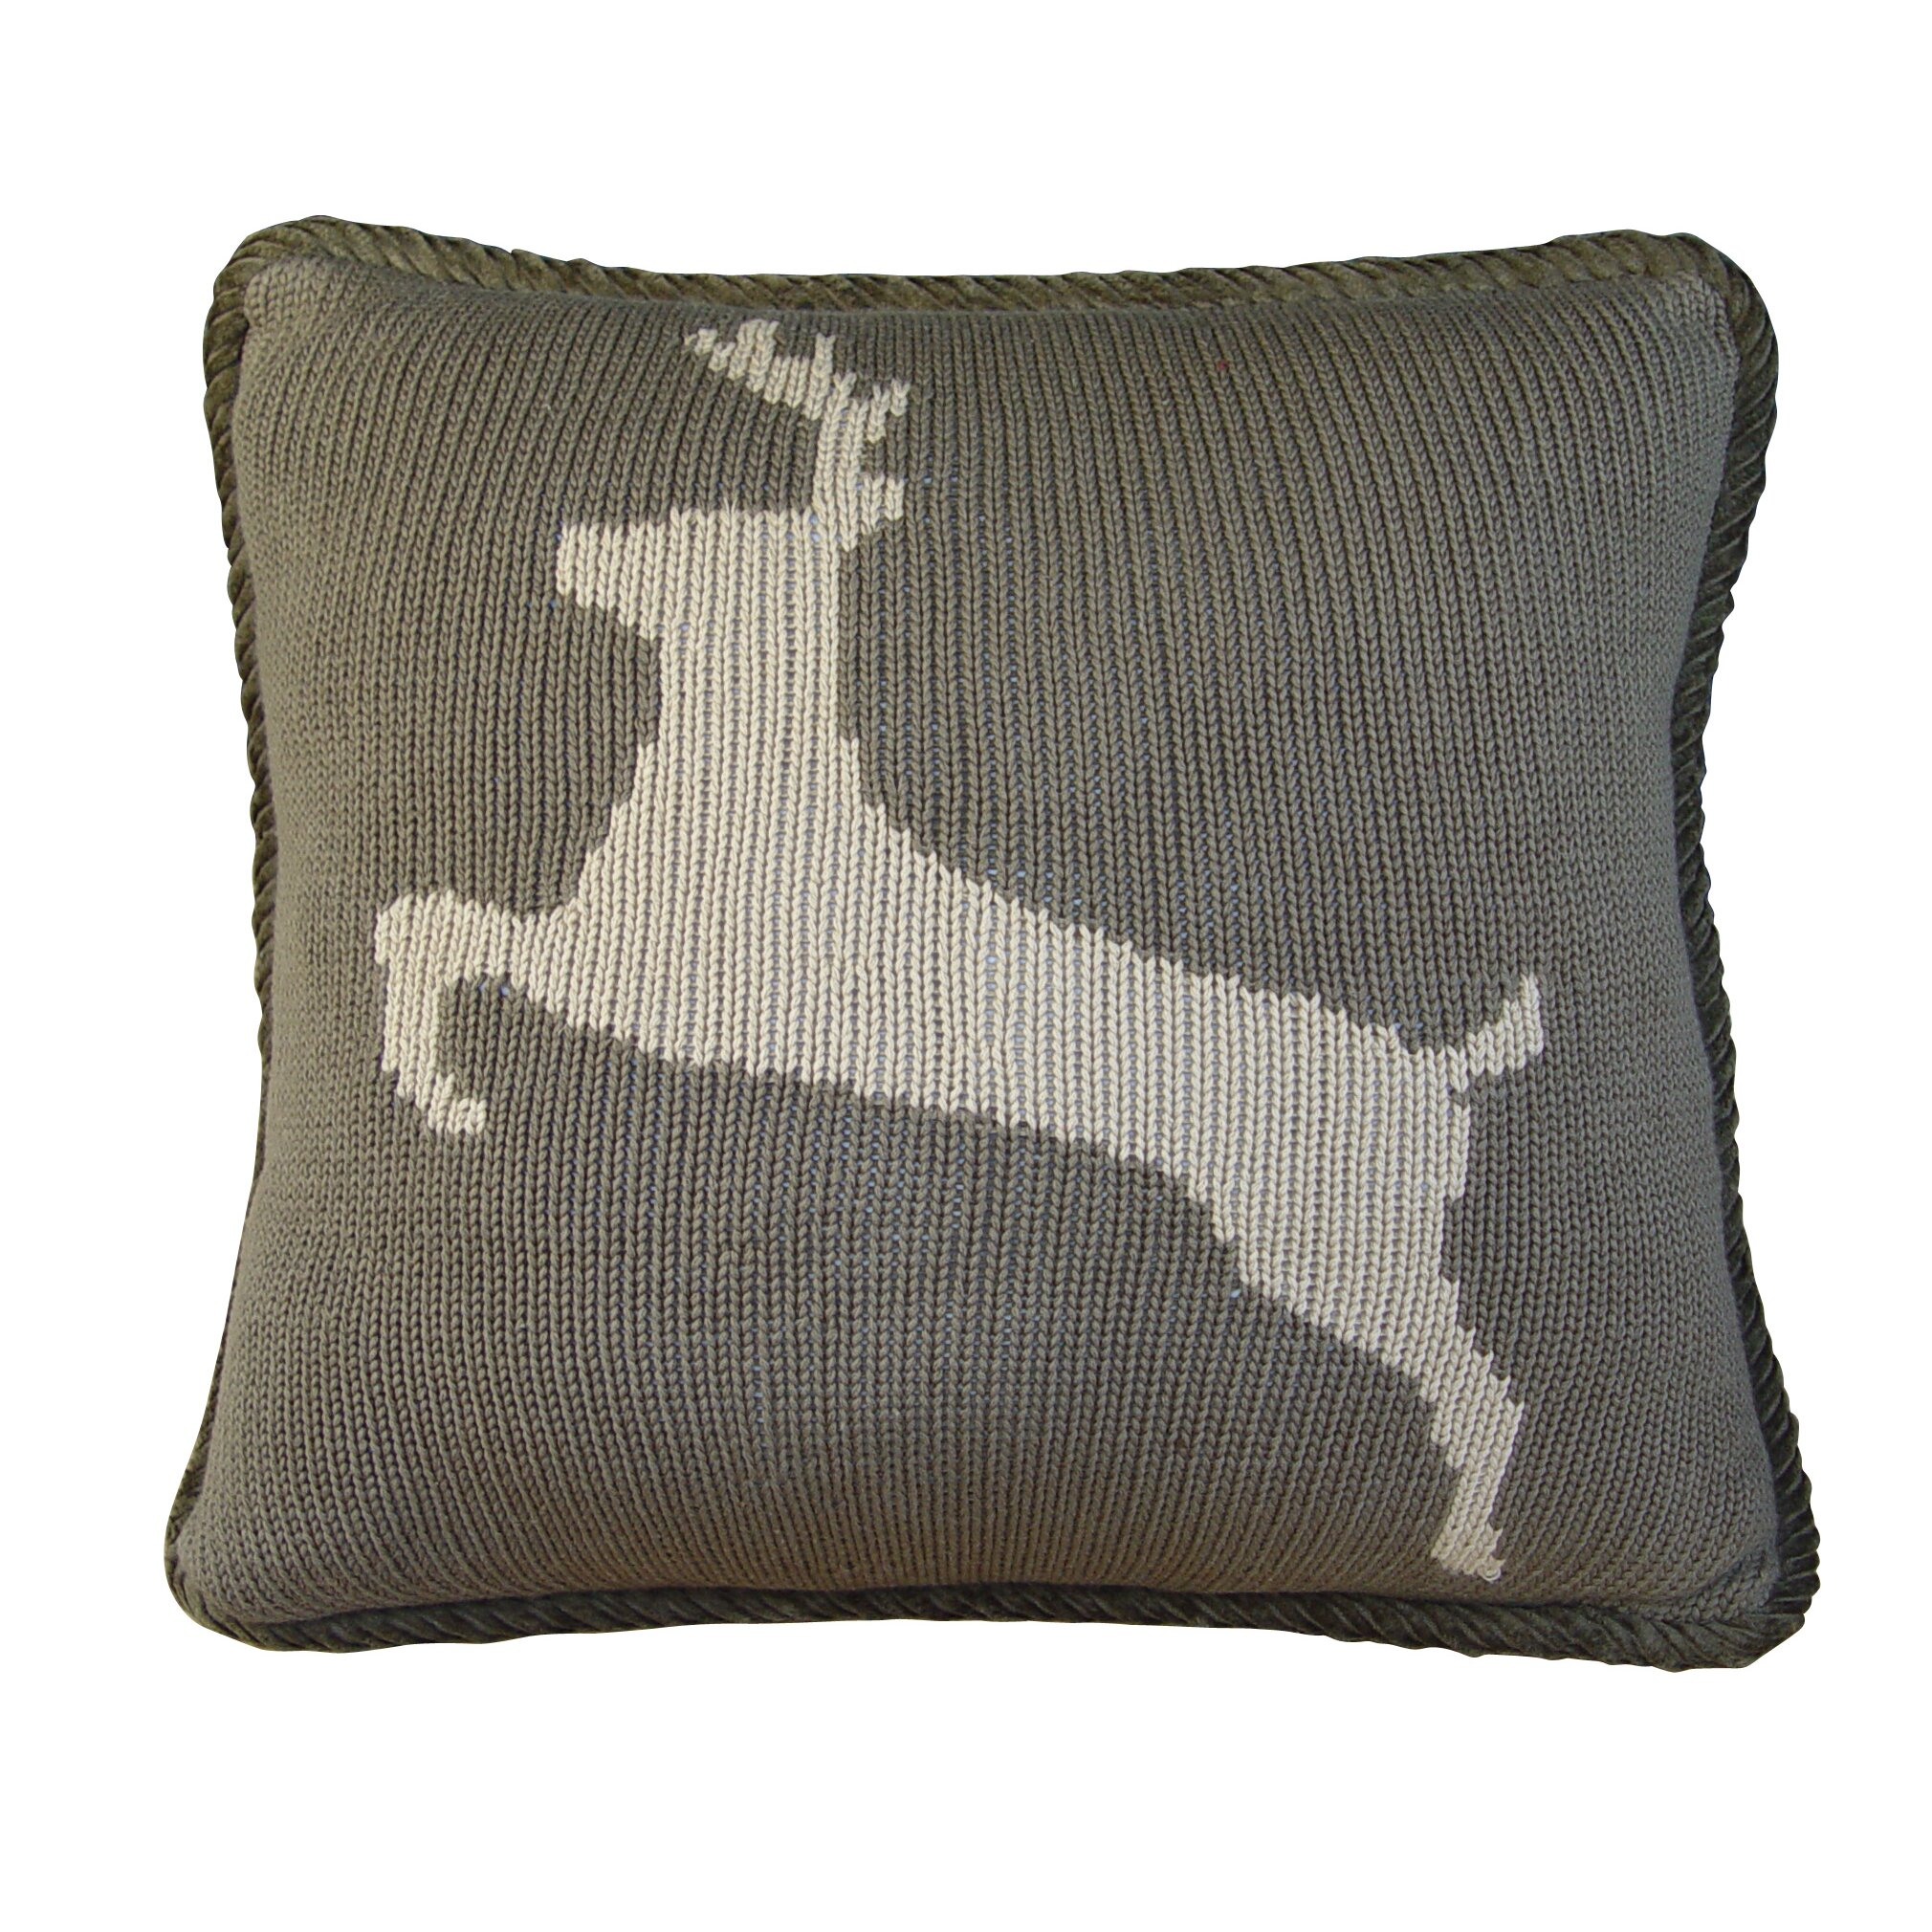 Throw Pillows Deer : HiEnd Accents Deer Knitted Throw Pillow Wayfair